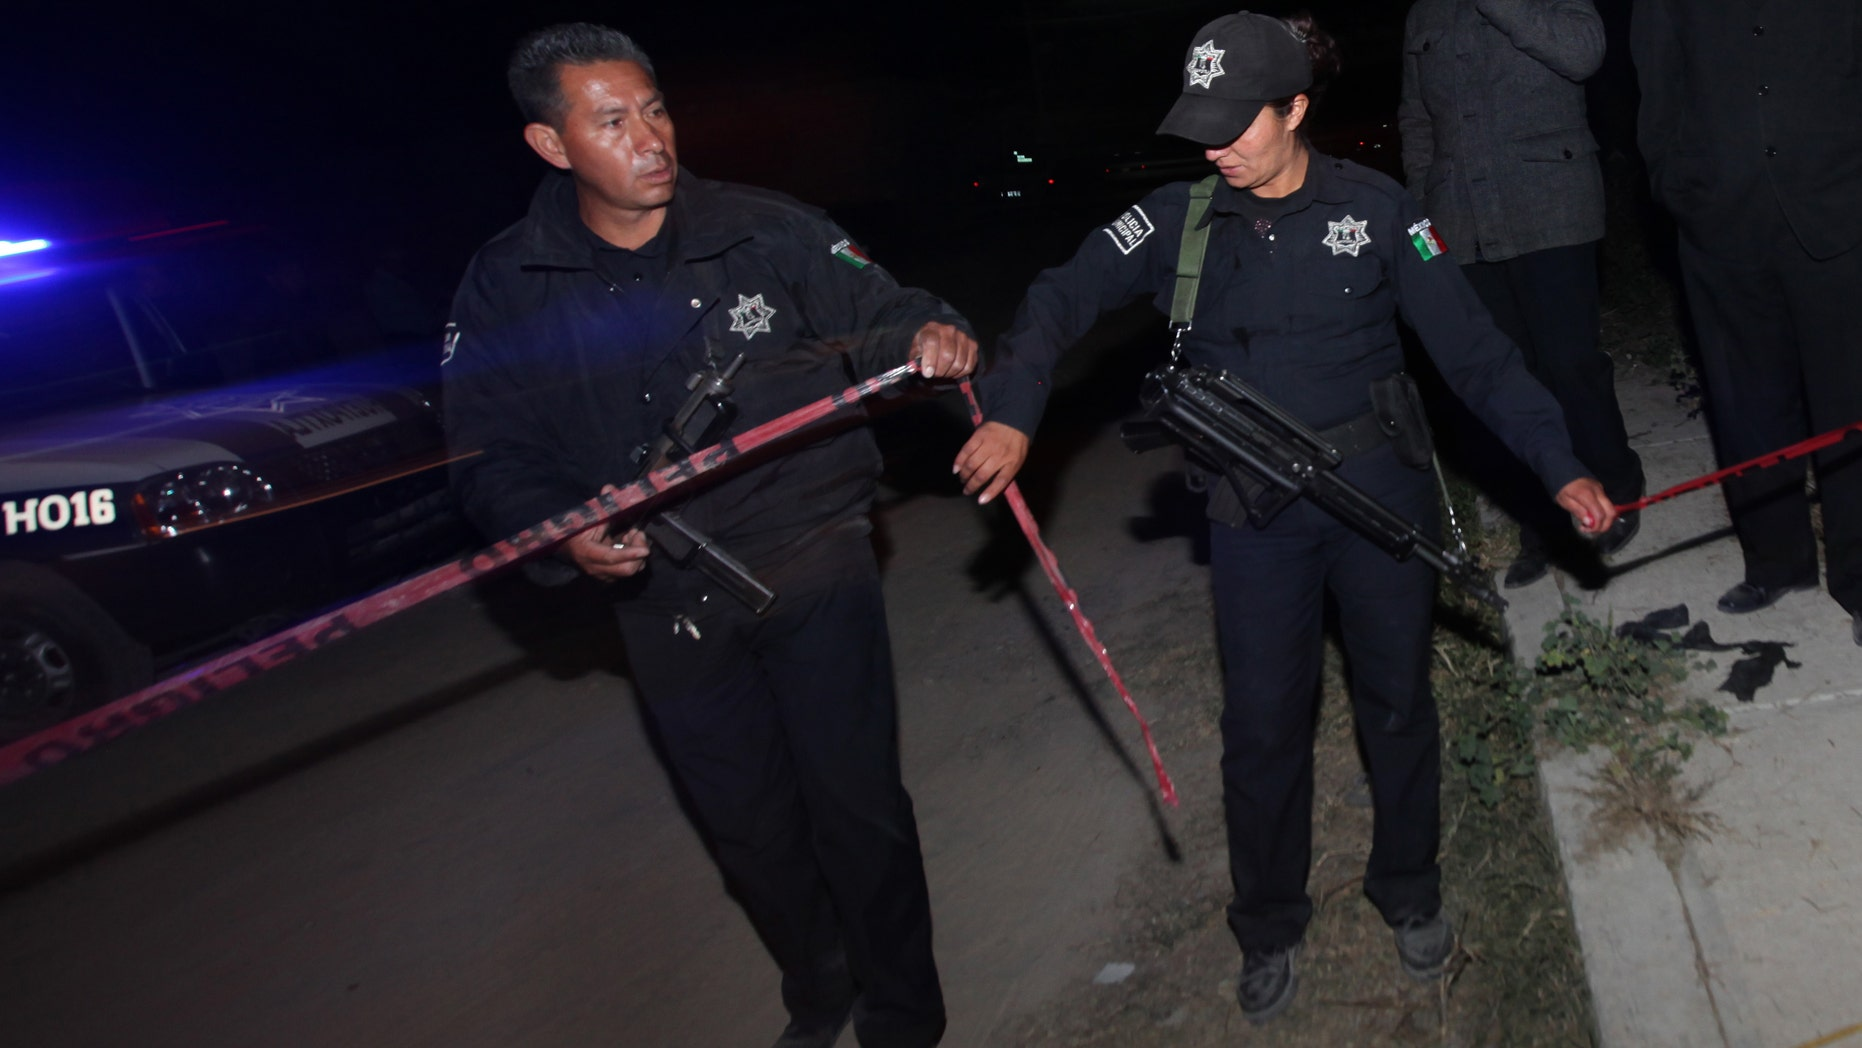 Police agents cordon off an area in the village of Hueypoxtla, Mexico, Wednesday, Dec. 4, 2013. Mexican troops and federal police kept a nighttime vigil guarding a rural field where thieves abandoned a stolen shipment of highly radioactive cobalt-60, while officials began planning the delicate task of safely recovering the dangerous material. The cargo truck hauling the cobalt-60 was stolen from a gas station Tuesday in the neighboring state of Hidalgo, about 40 kilometers (24 miles) from where the material was recovered. (AP Photo/Marco Ugarte)